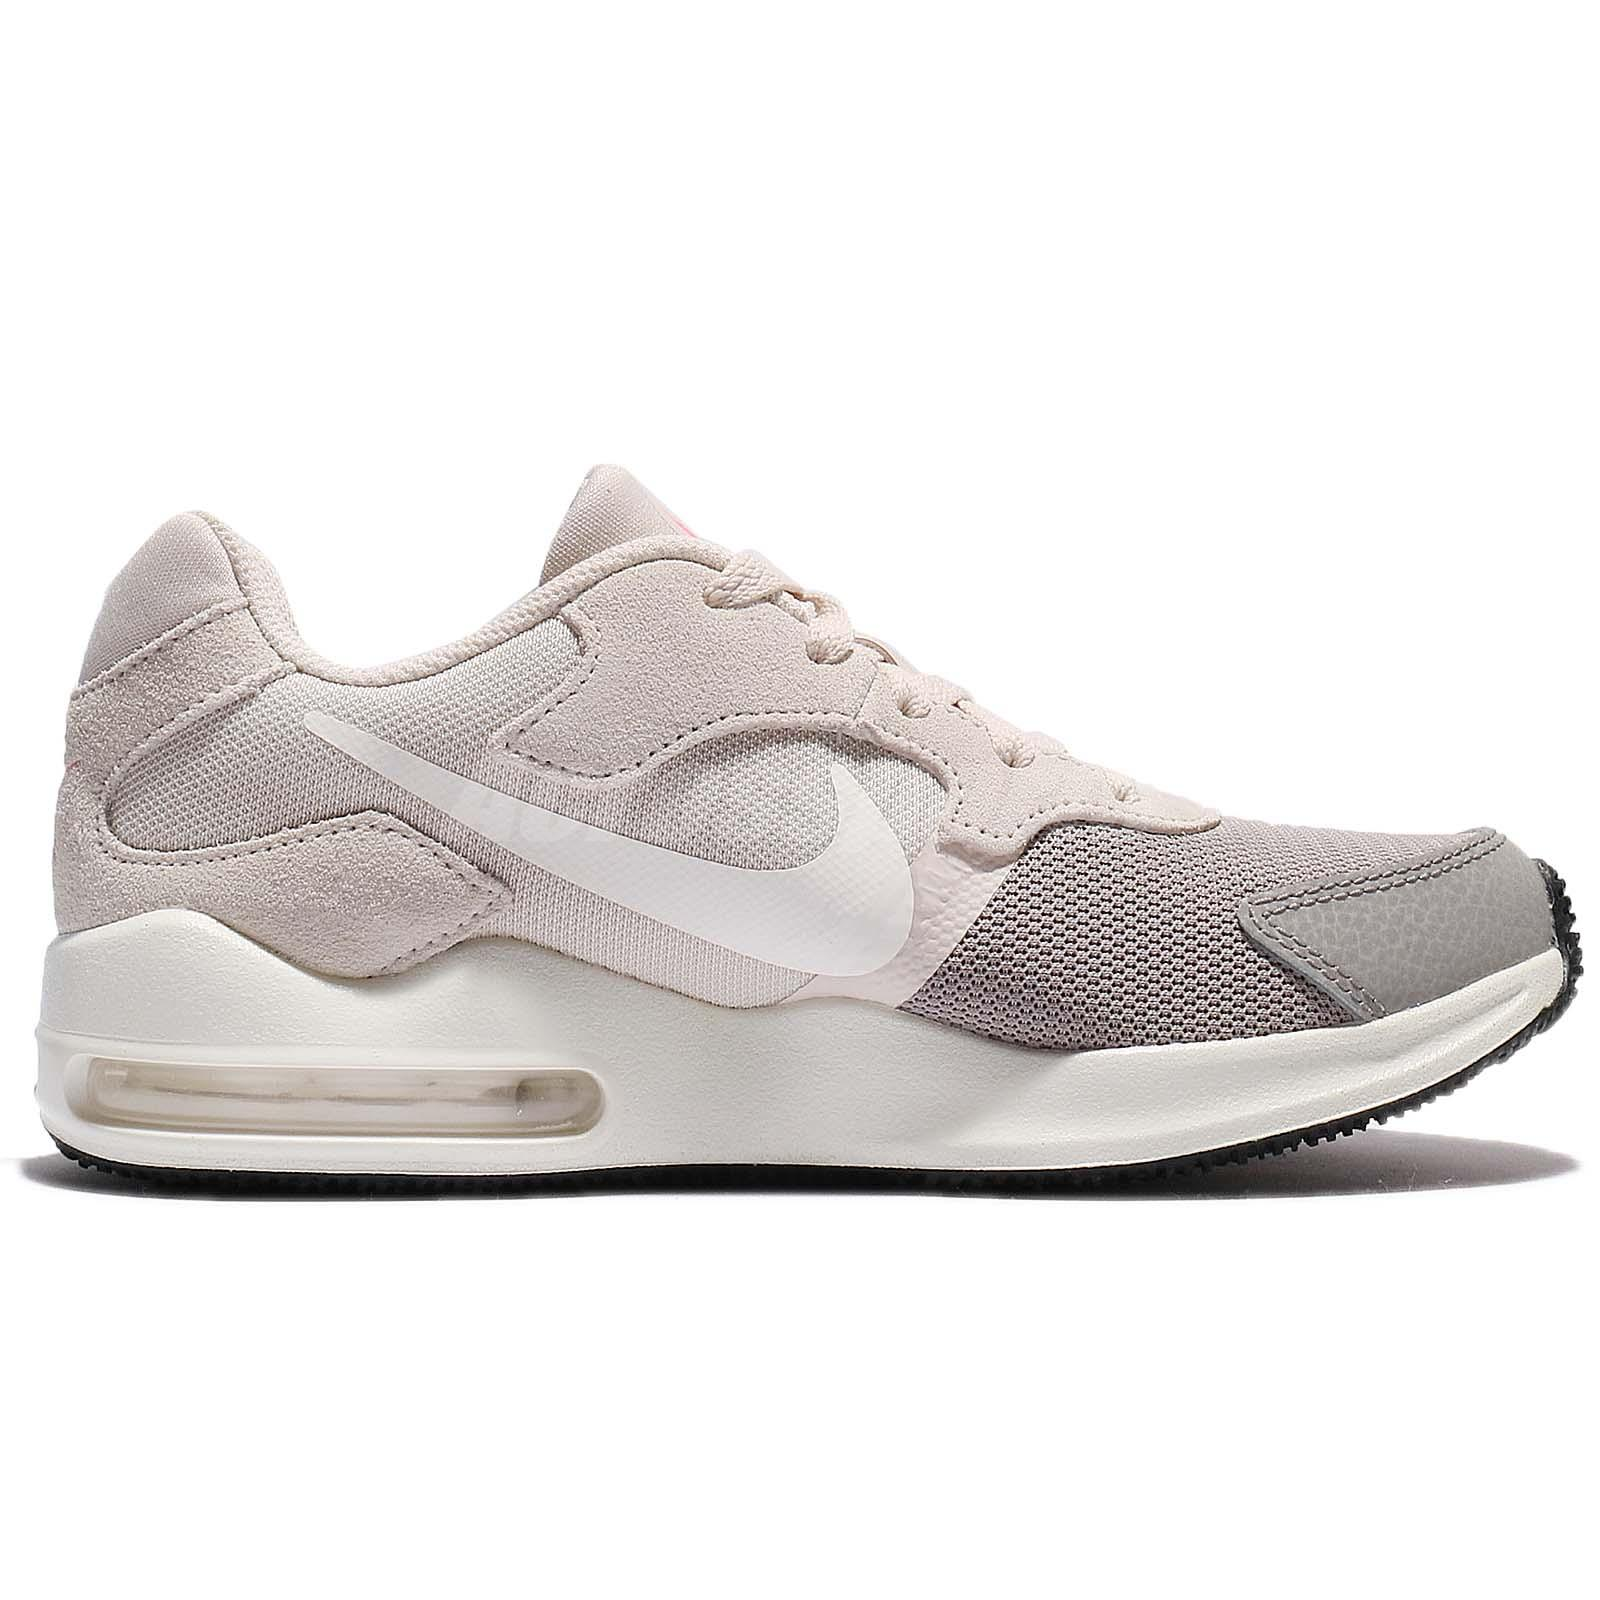 new zealand new discount nike air max guile mens trainer shoes richkin  store784512 12144 a4f51 a1441  free shipping condition brand new with box  d0621 999e7 af72d7a1a